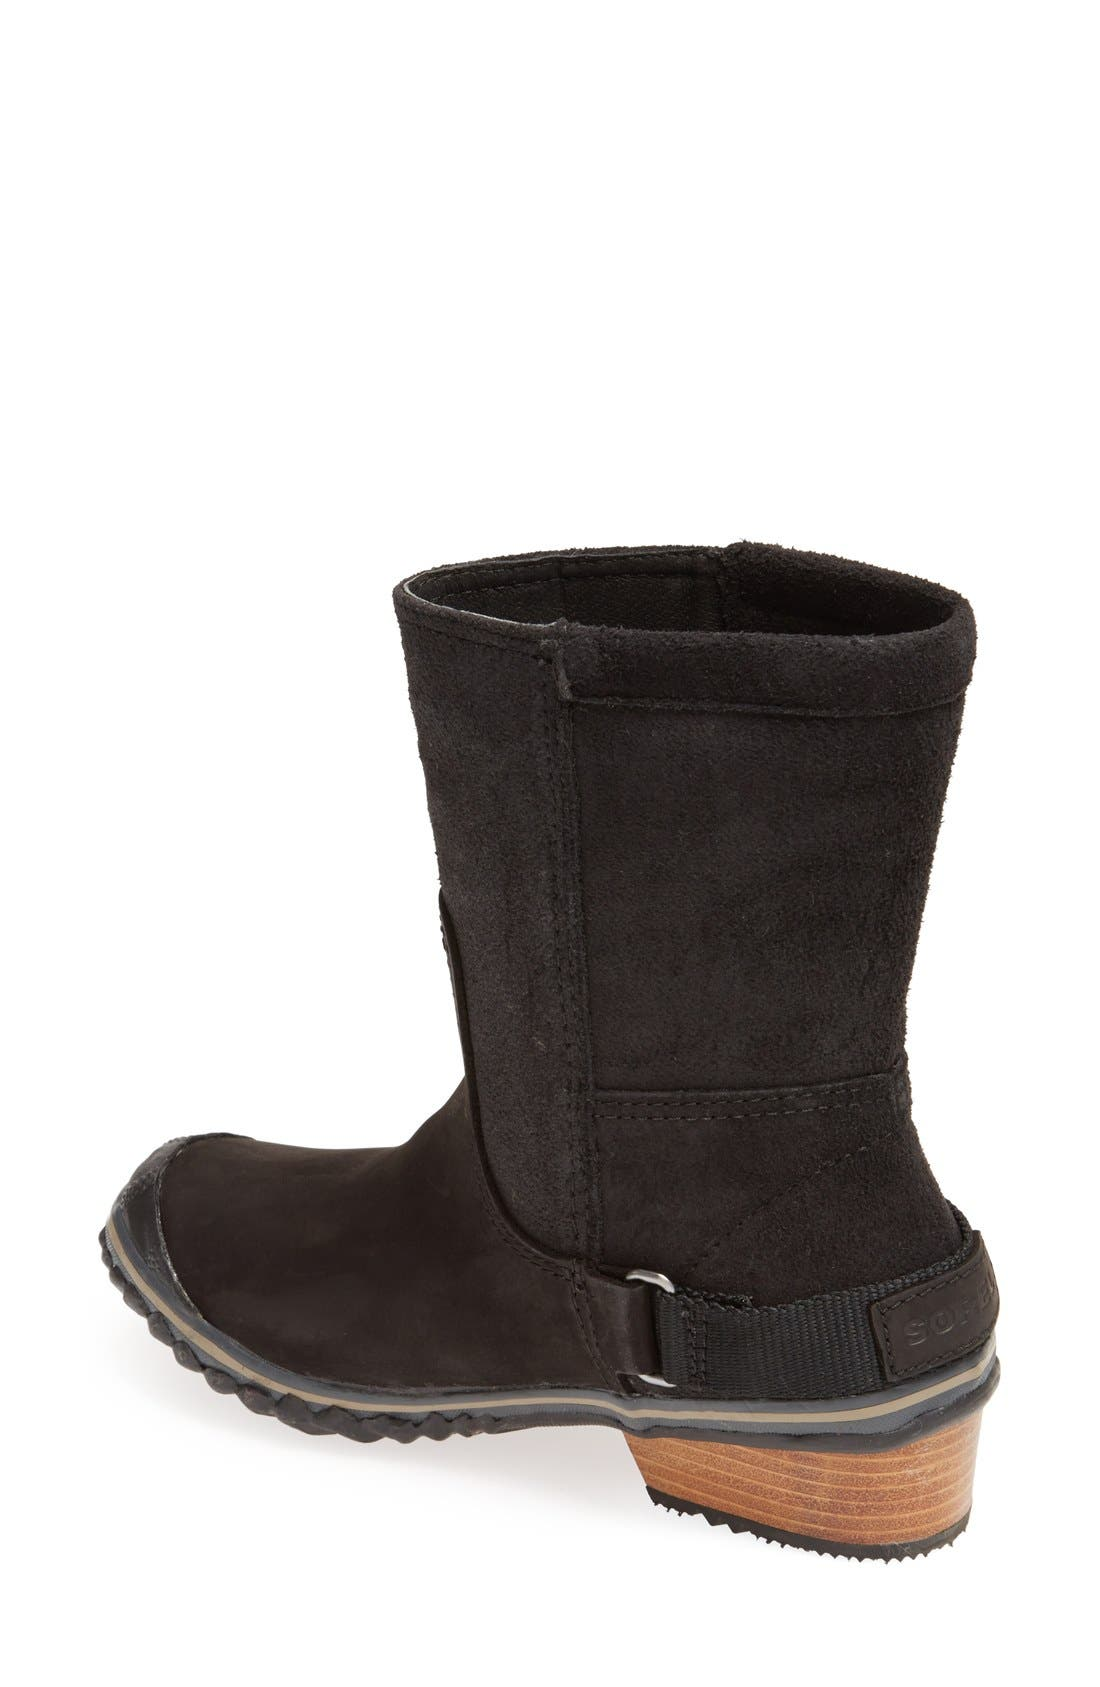 Alternate Image 2  - SOREL 'Slimshortie™' Waterproof Boot (Women)